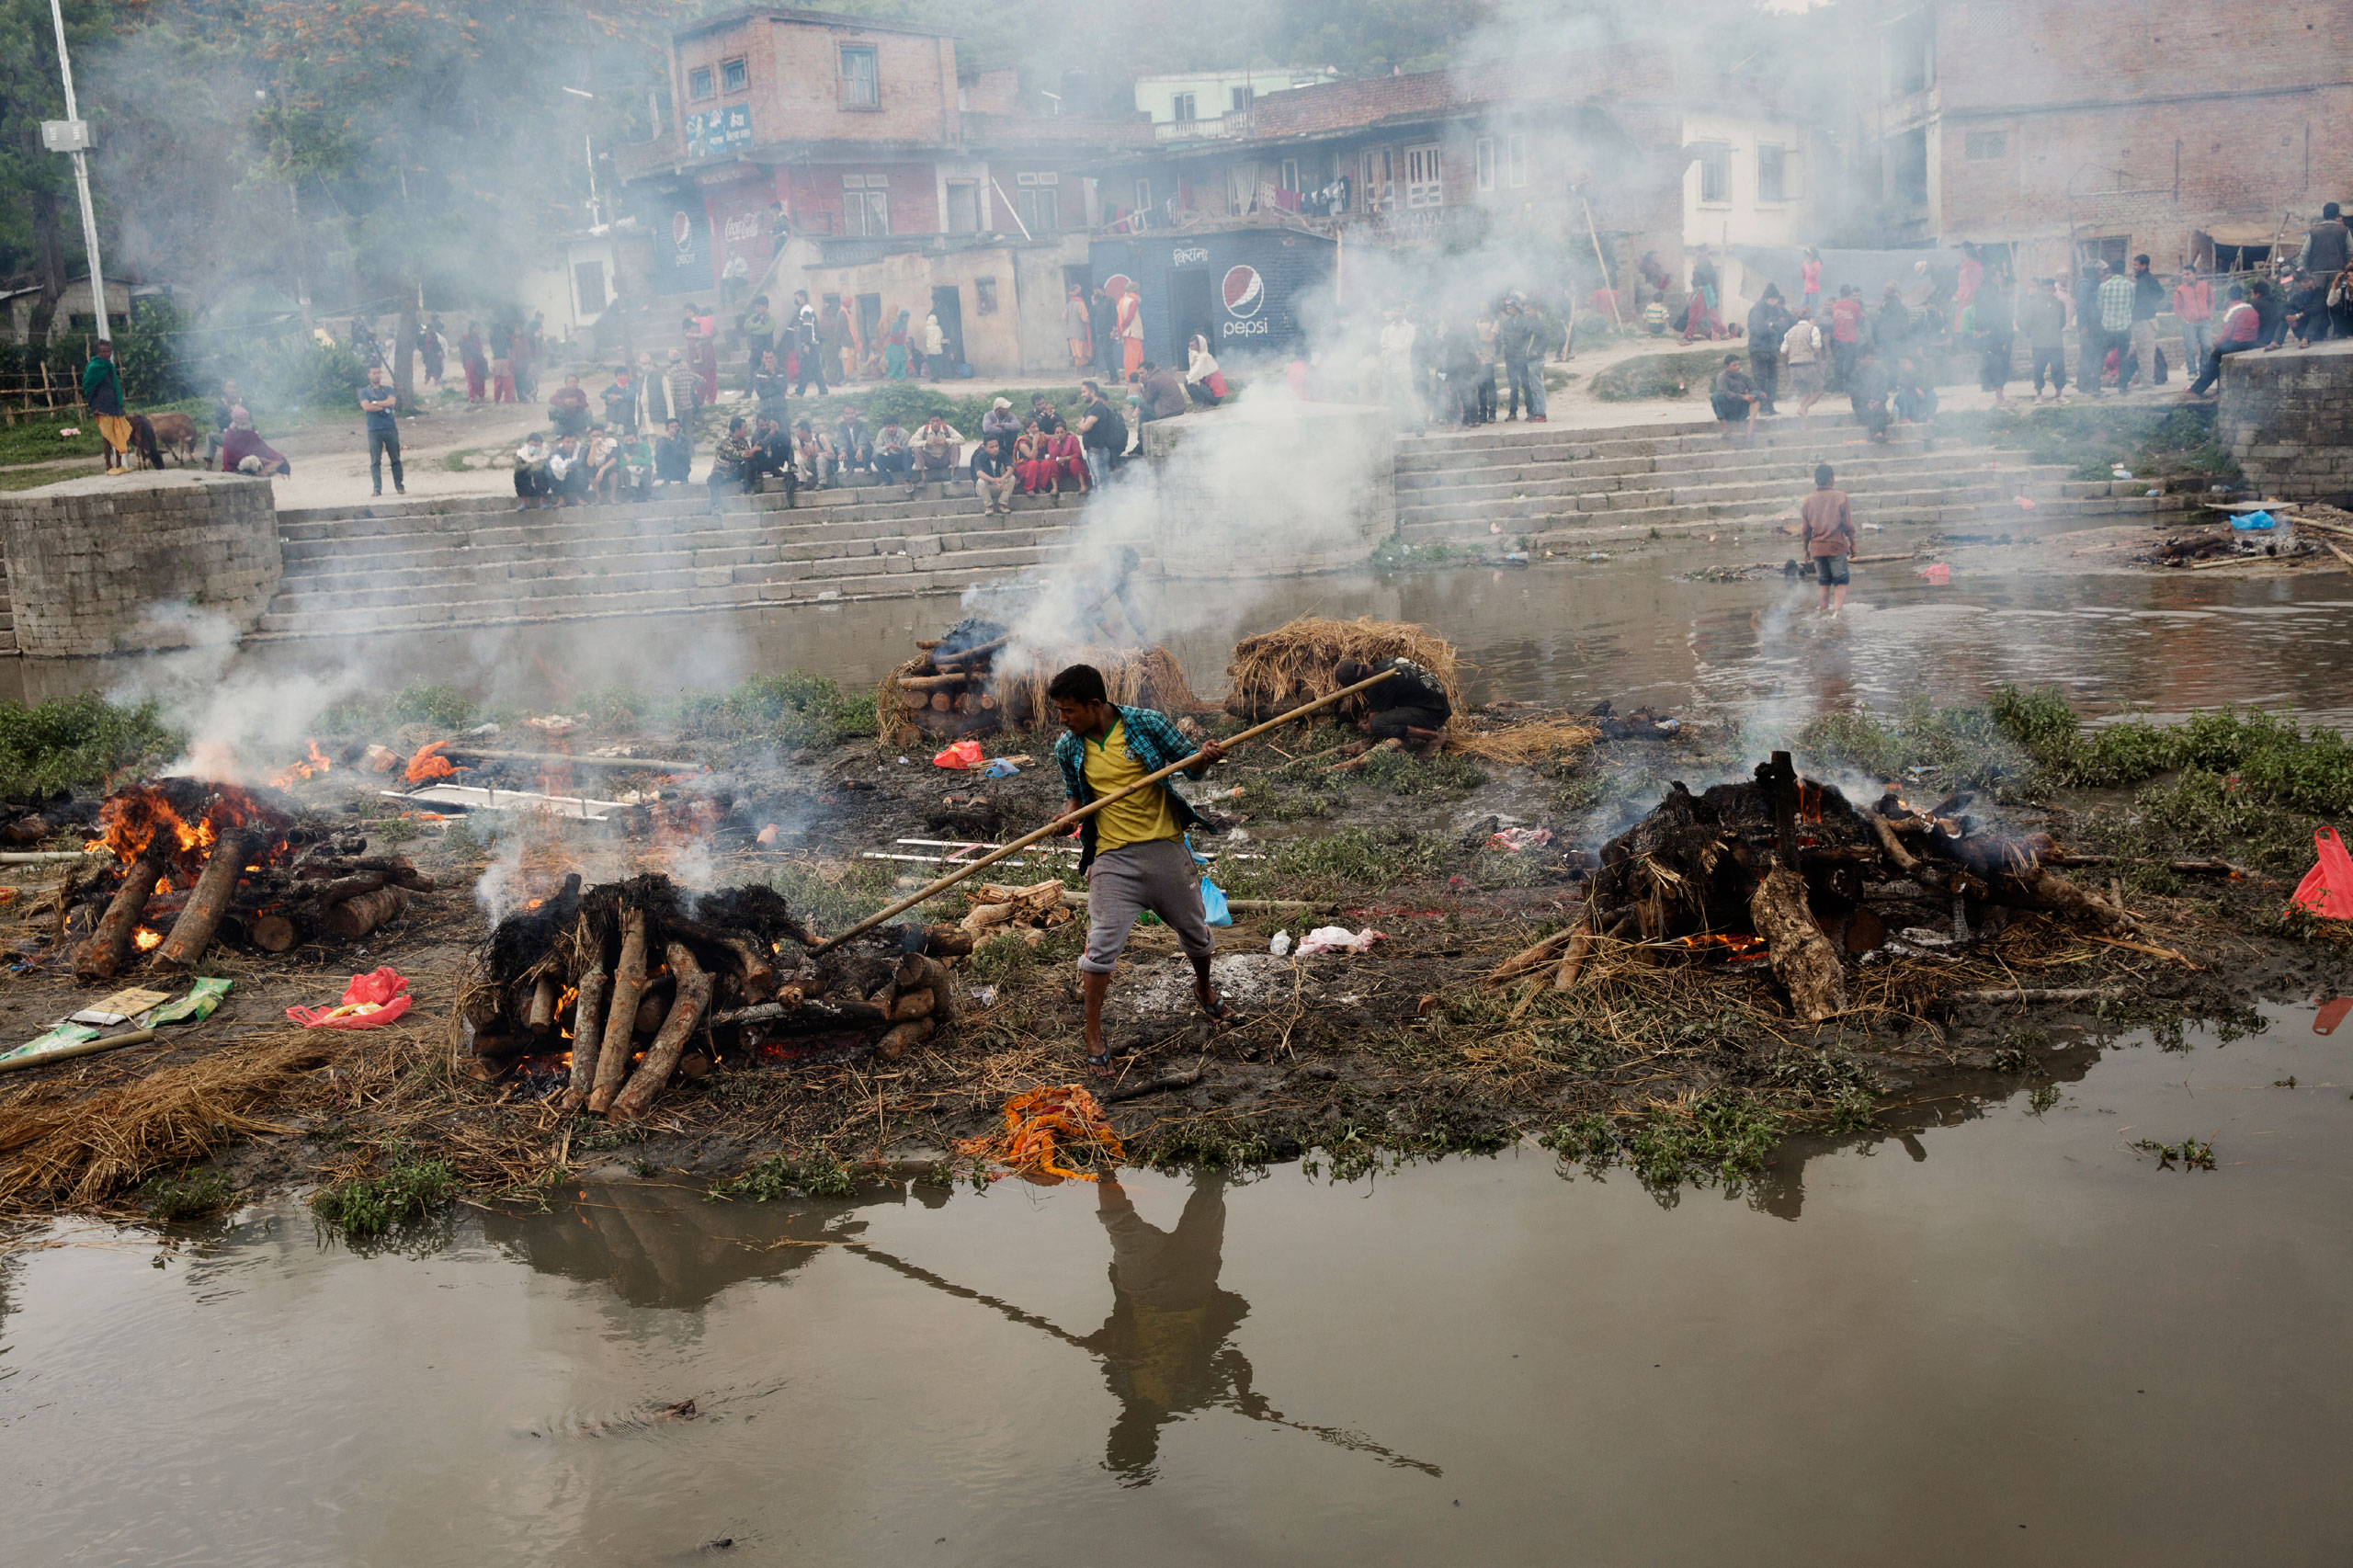 A Hindu Nepalese man tends to a funeral pyre built for a person killed in the earthquake, on the river in Kathmandu, April 27, 2015.